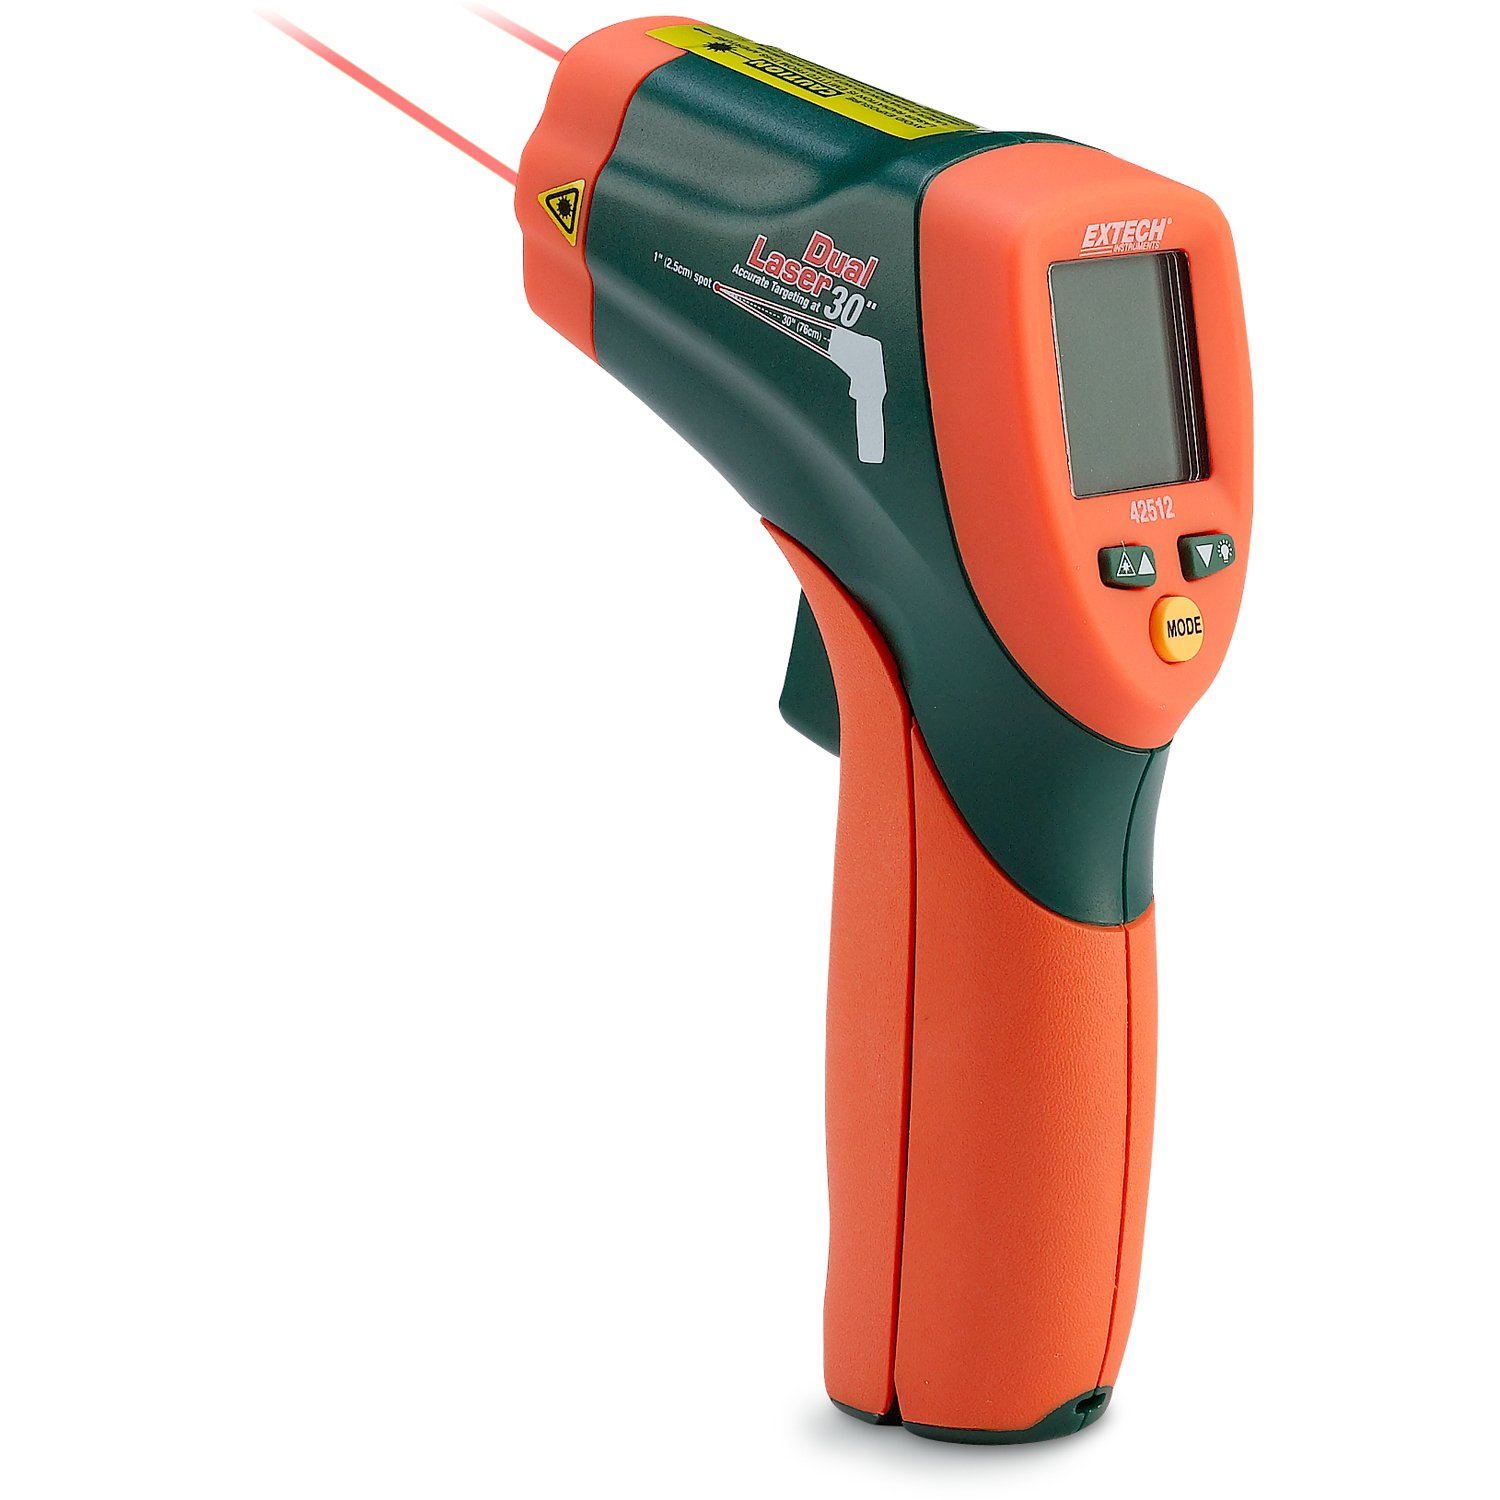 Extech Dual Laser IR Thermometer with NIST Certificate Model 42512-NIST